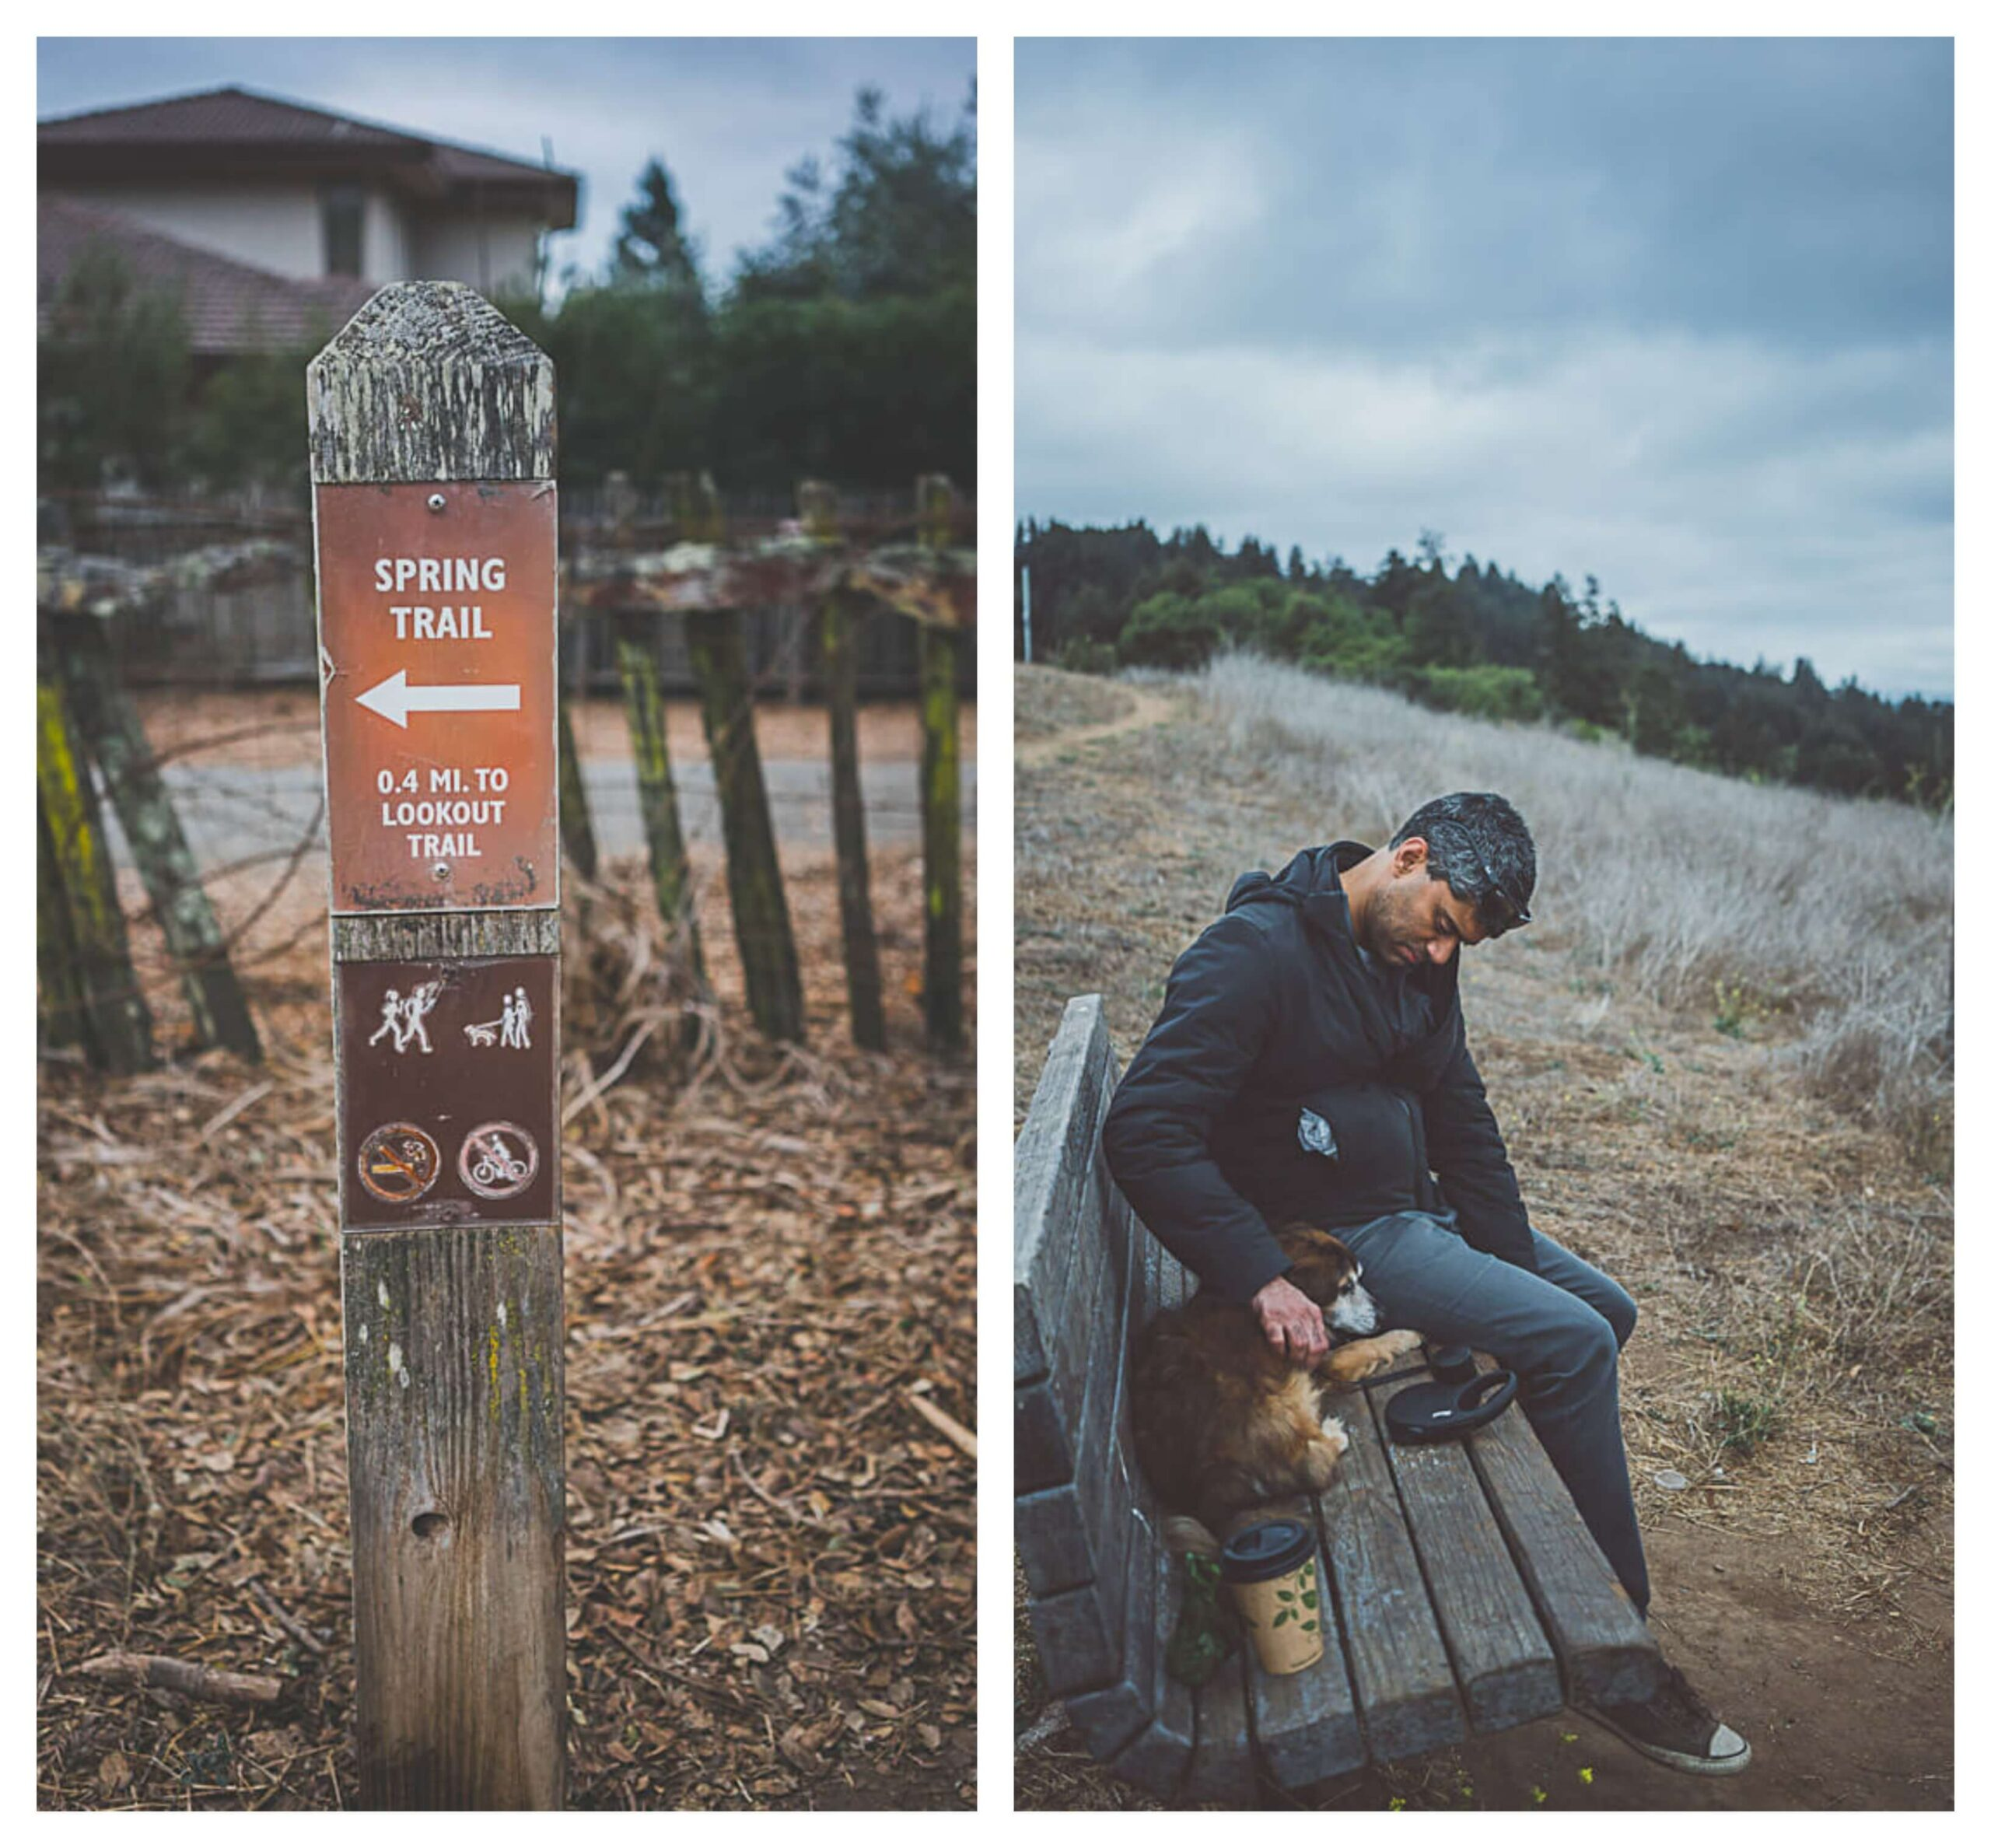 dog friendly hiking trails in Santa Cruz, where to hike with dogs in Santa Cruz